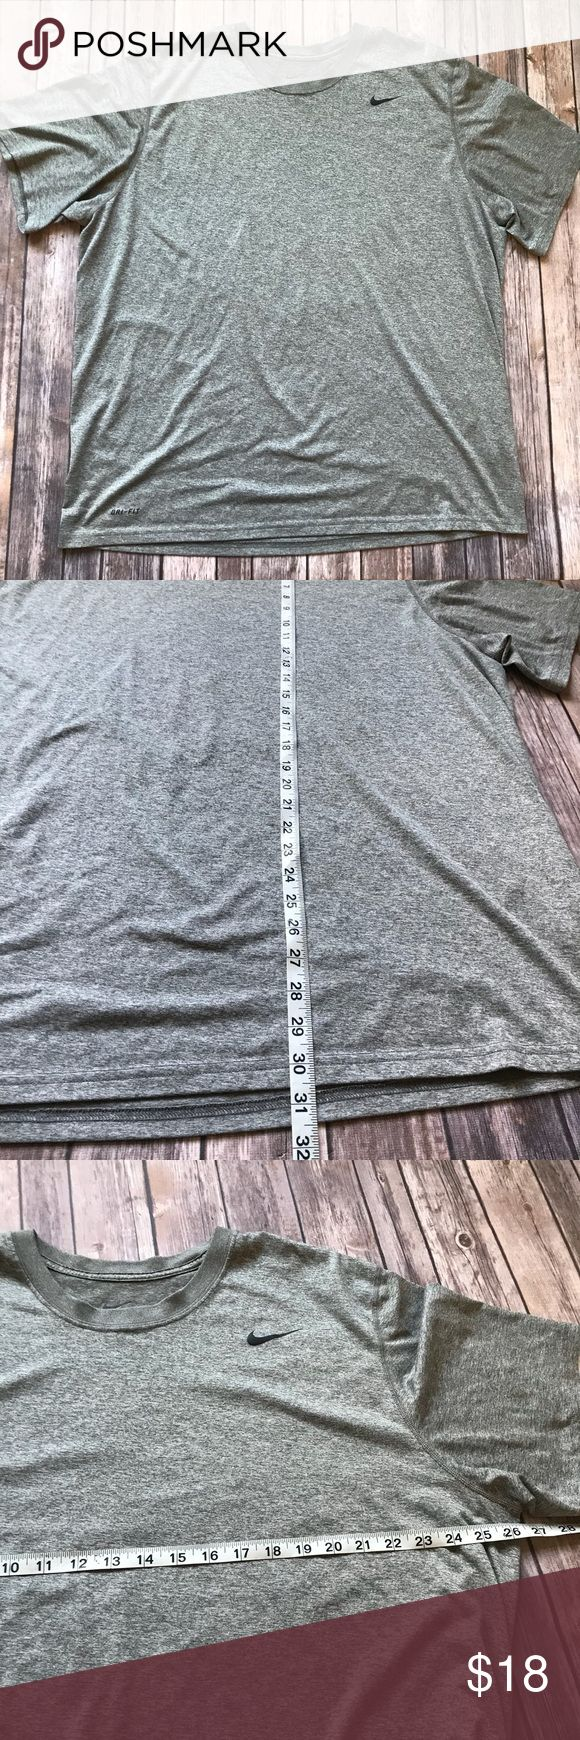 Men's Nike Dri-Fit Gray Athletic T-Shirt XXL Men's great condition gray athletic Nike Dri-Fit t-Shirt 💠 Add to a bundle to get a private discount💠Free Gift with $25+ Purchase 💠 Discount ALWAYS Available on 2+ items💠 No trades, holds, modeling or transactions off of Poshmark.💠 Nike Shirts Tees - Short Sleeve